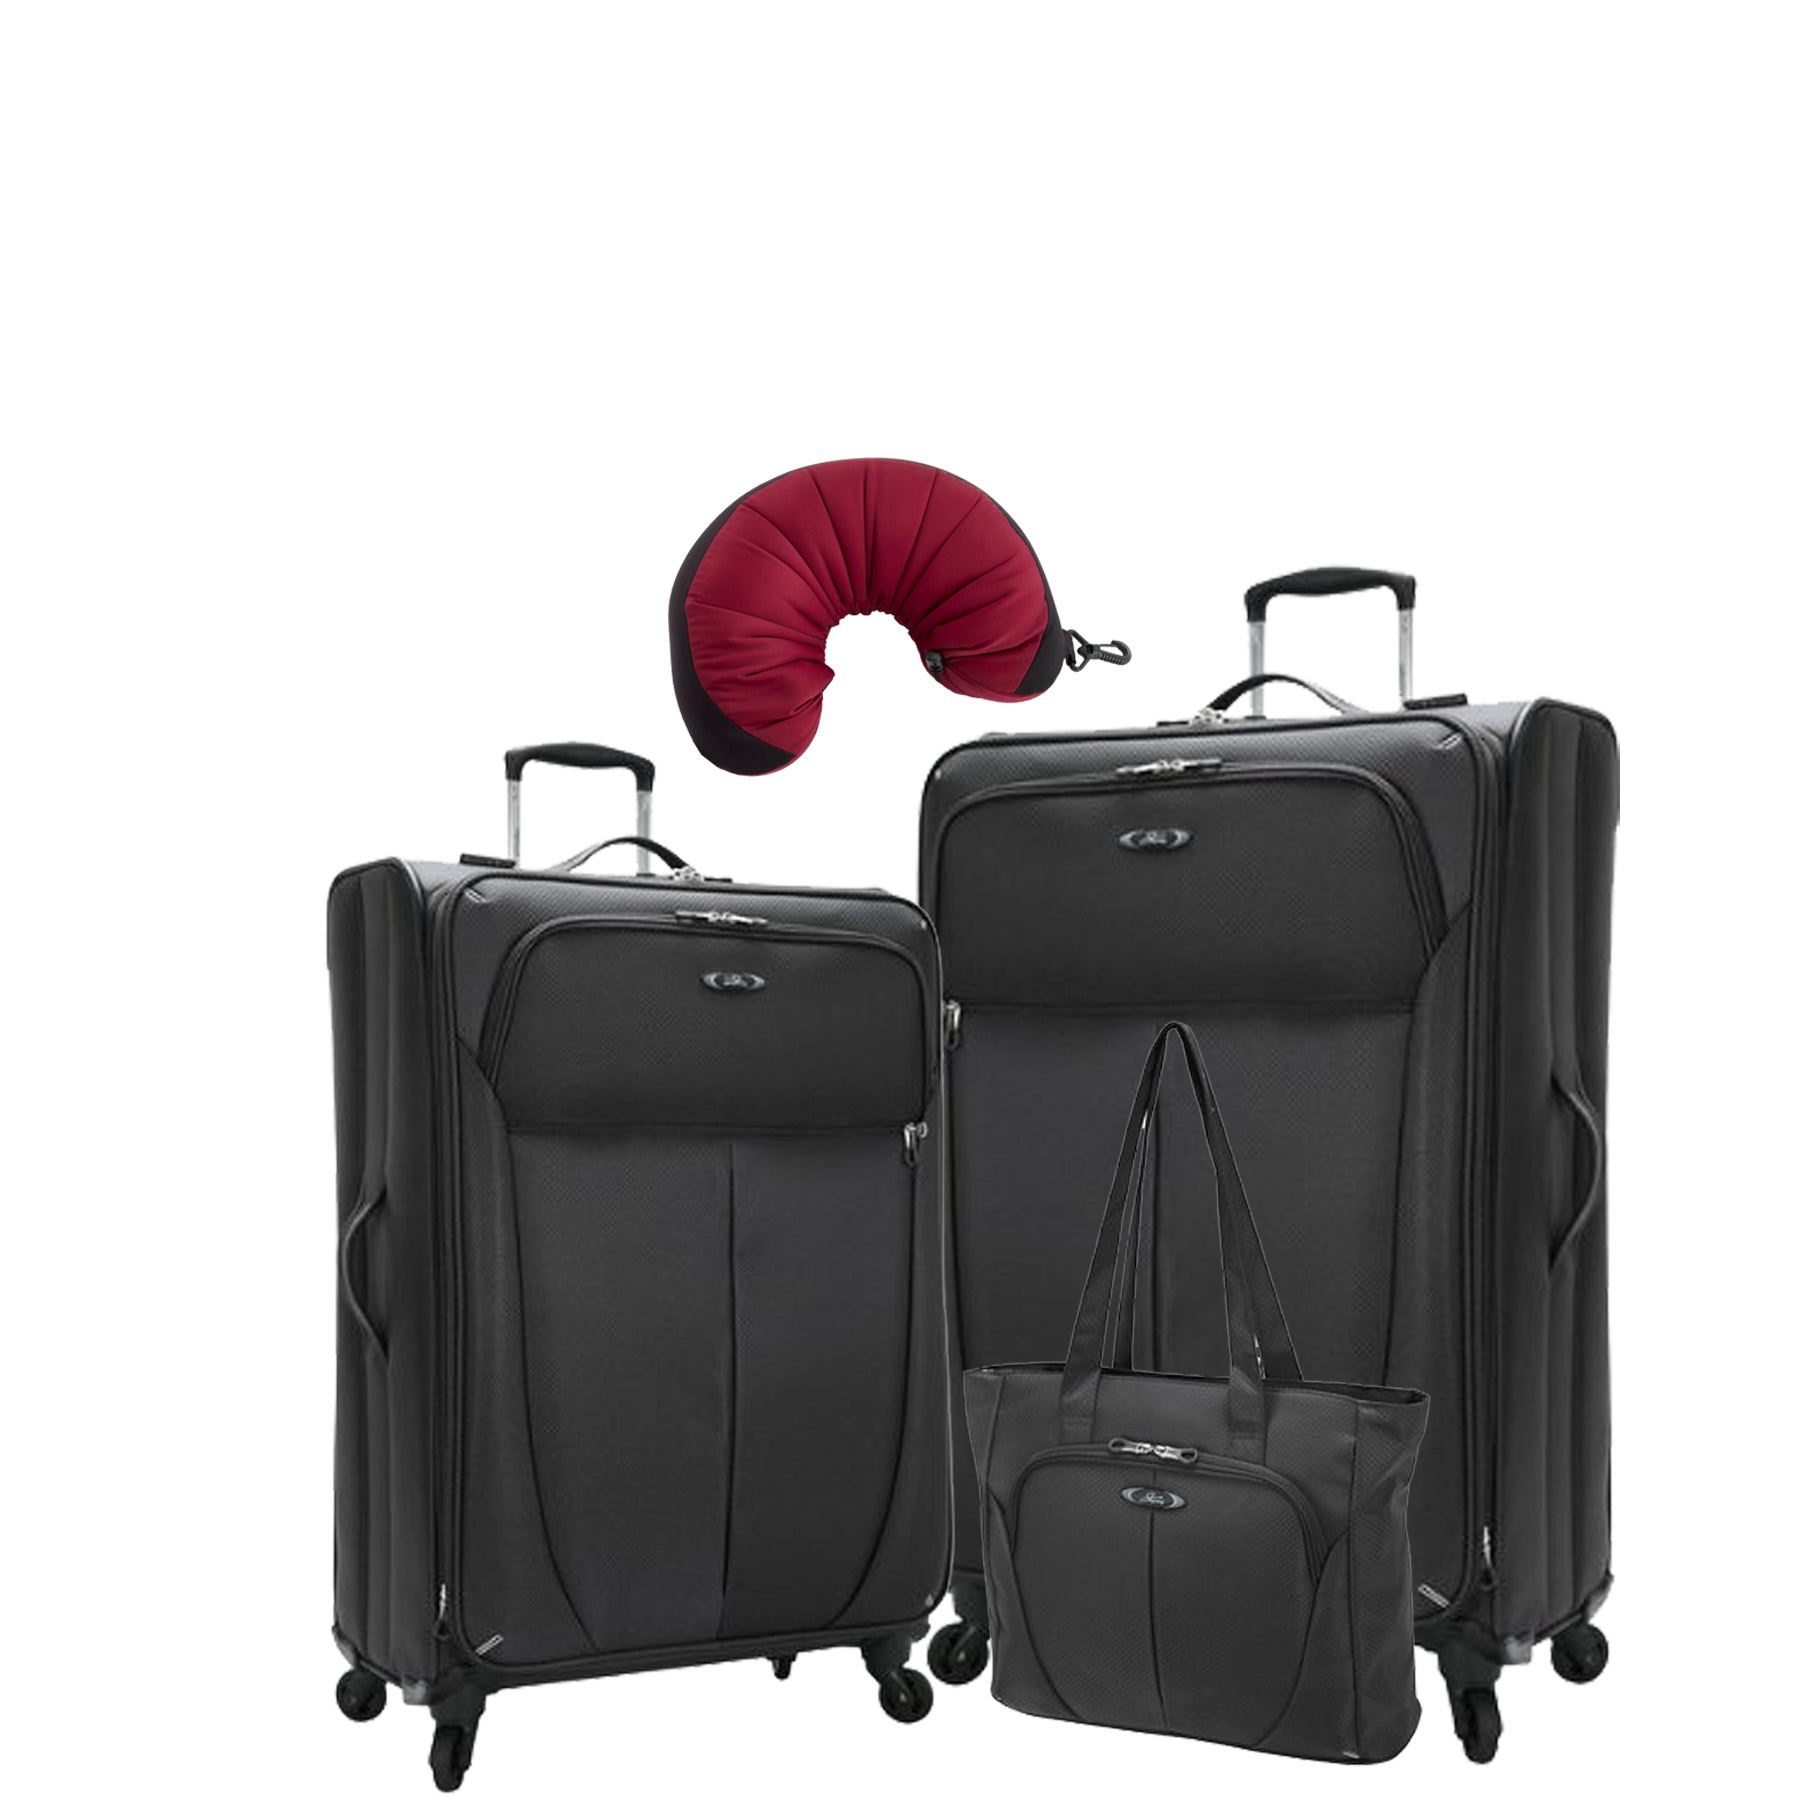 "Skyway Mirage Superlight | 4-Piece Set | 18"" Shopper Tote, 20"" and 24"" Expandable Spinners, Travel Pillow"